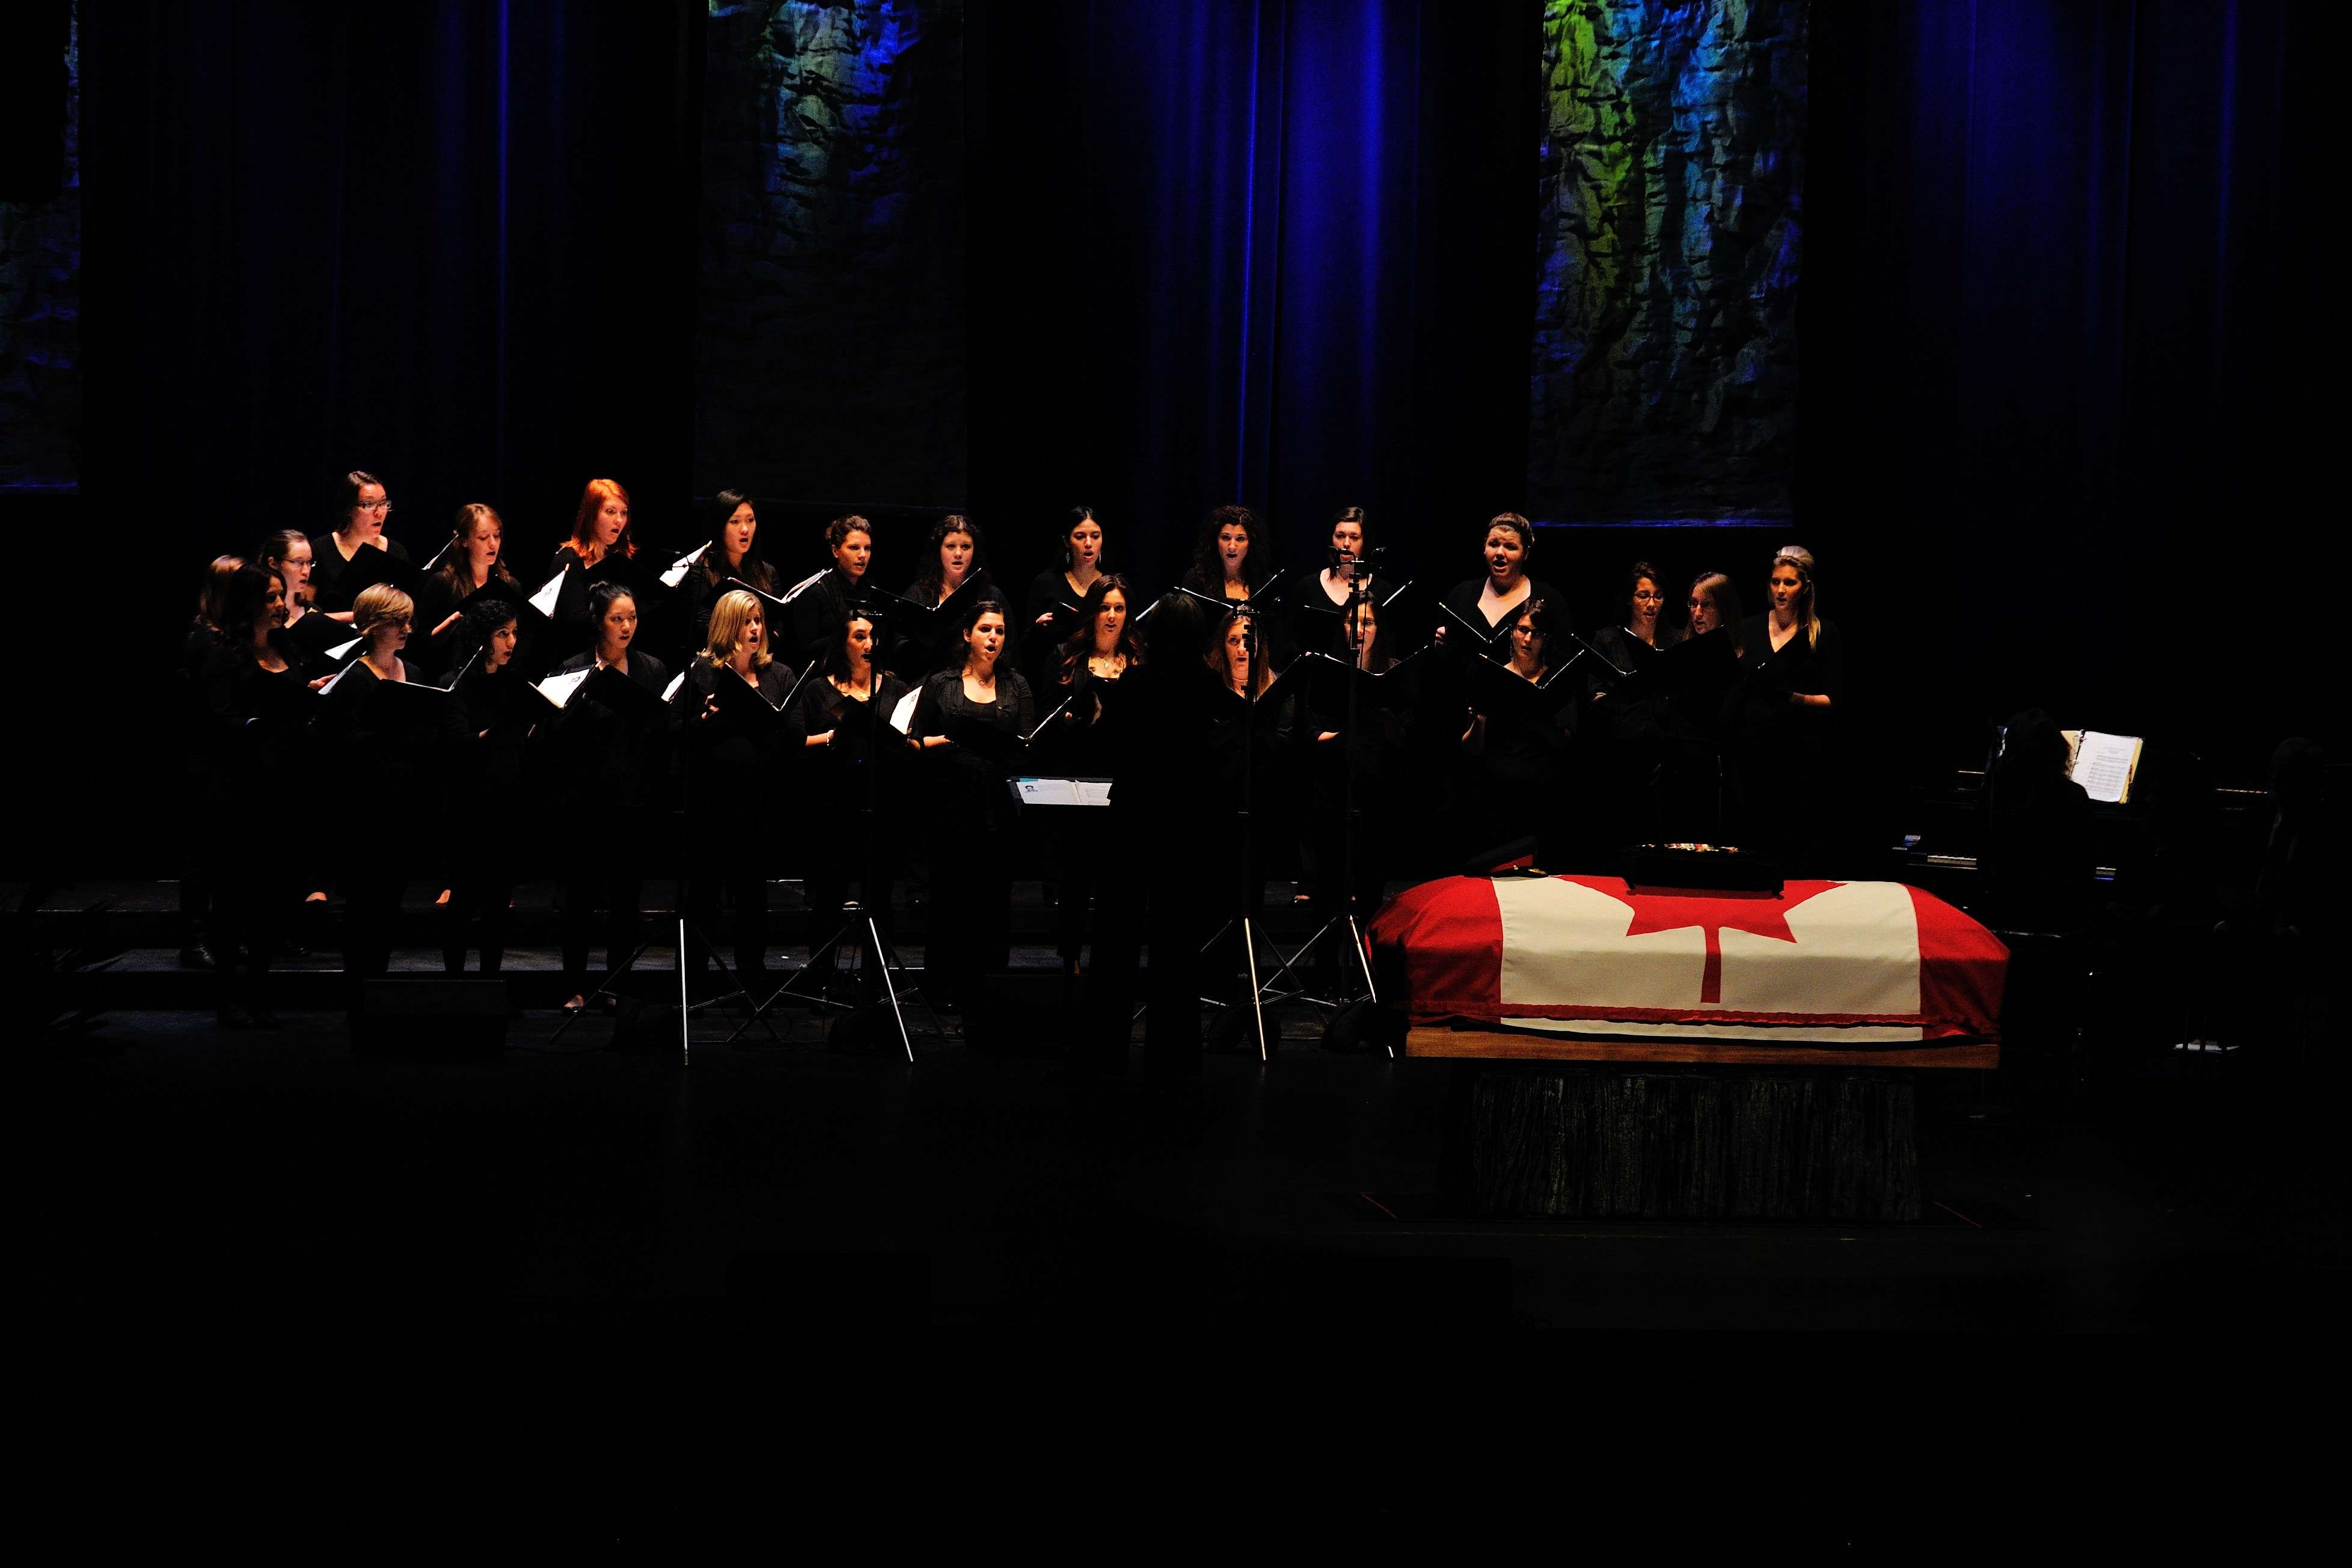 Their Excellencies attended the State funeral for the Honourable Lincoln Alexander, former Lieutenant Governor of Ontario. The ceremony included songs interpreted by a choir.